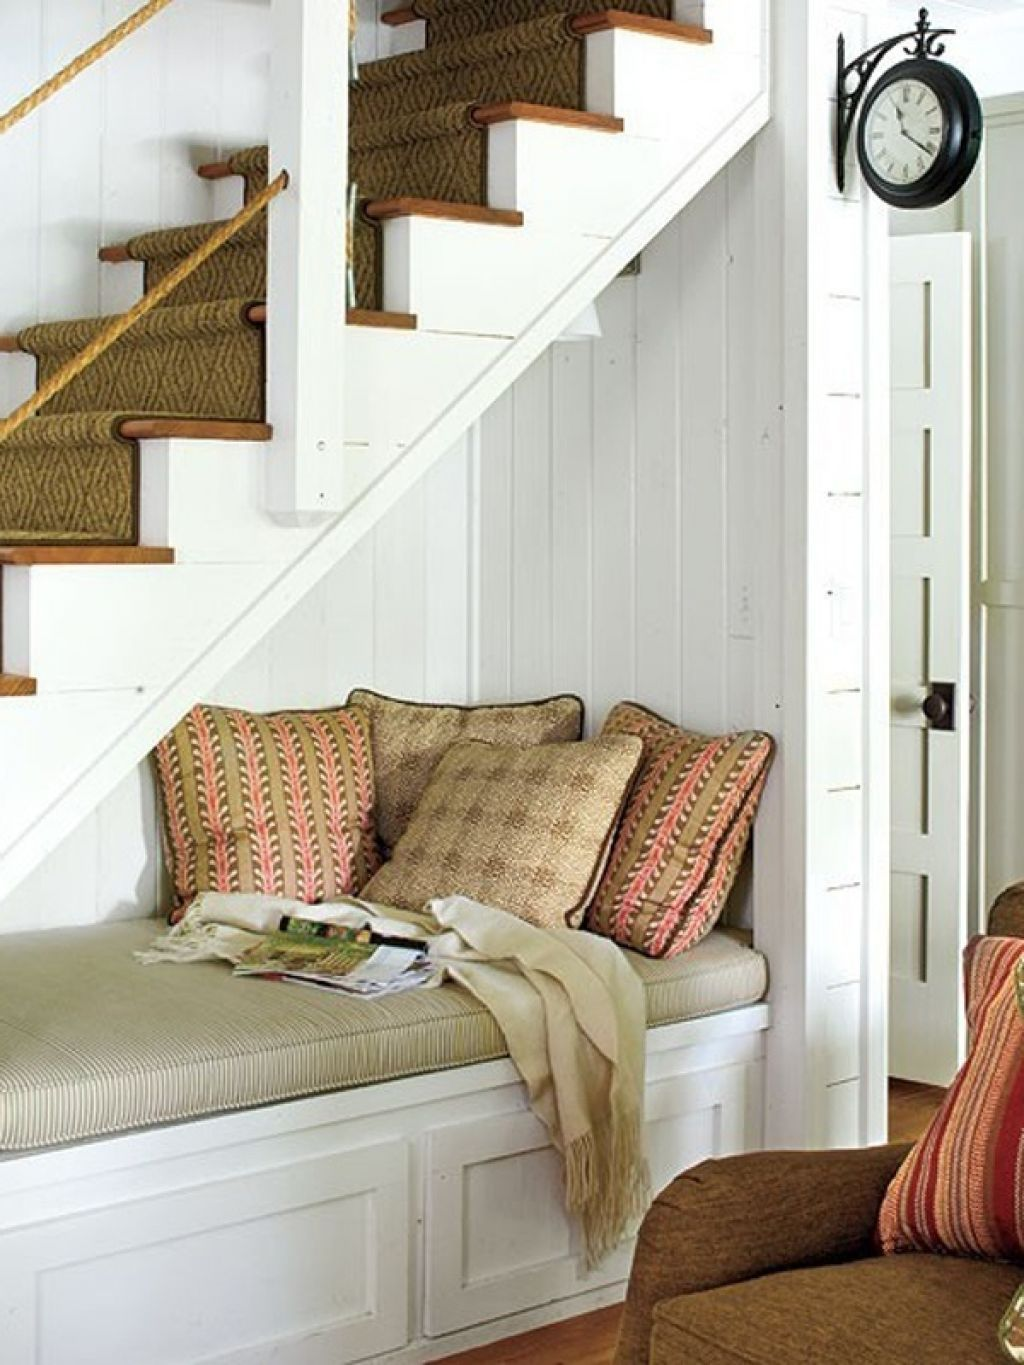 Couch Under Stairs Room Under Stairs Under Stairs Nook Stair Nook